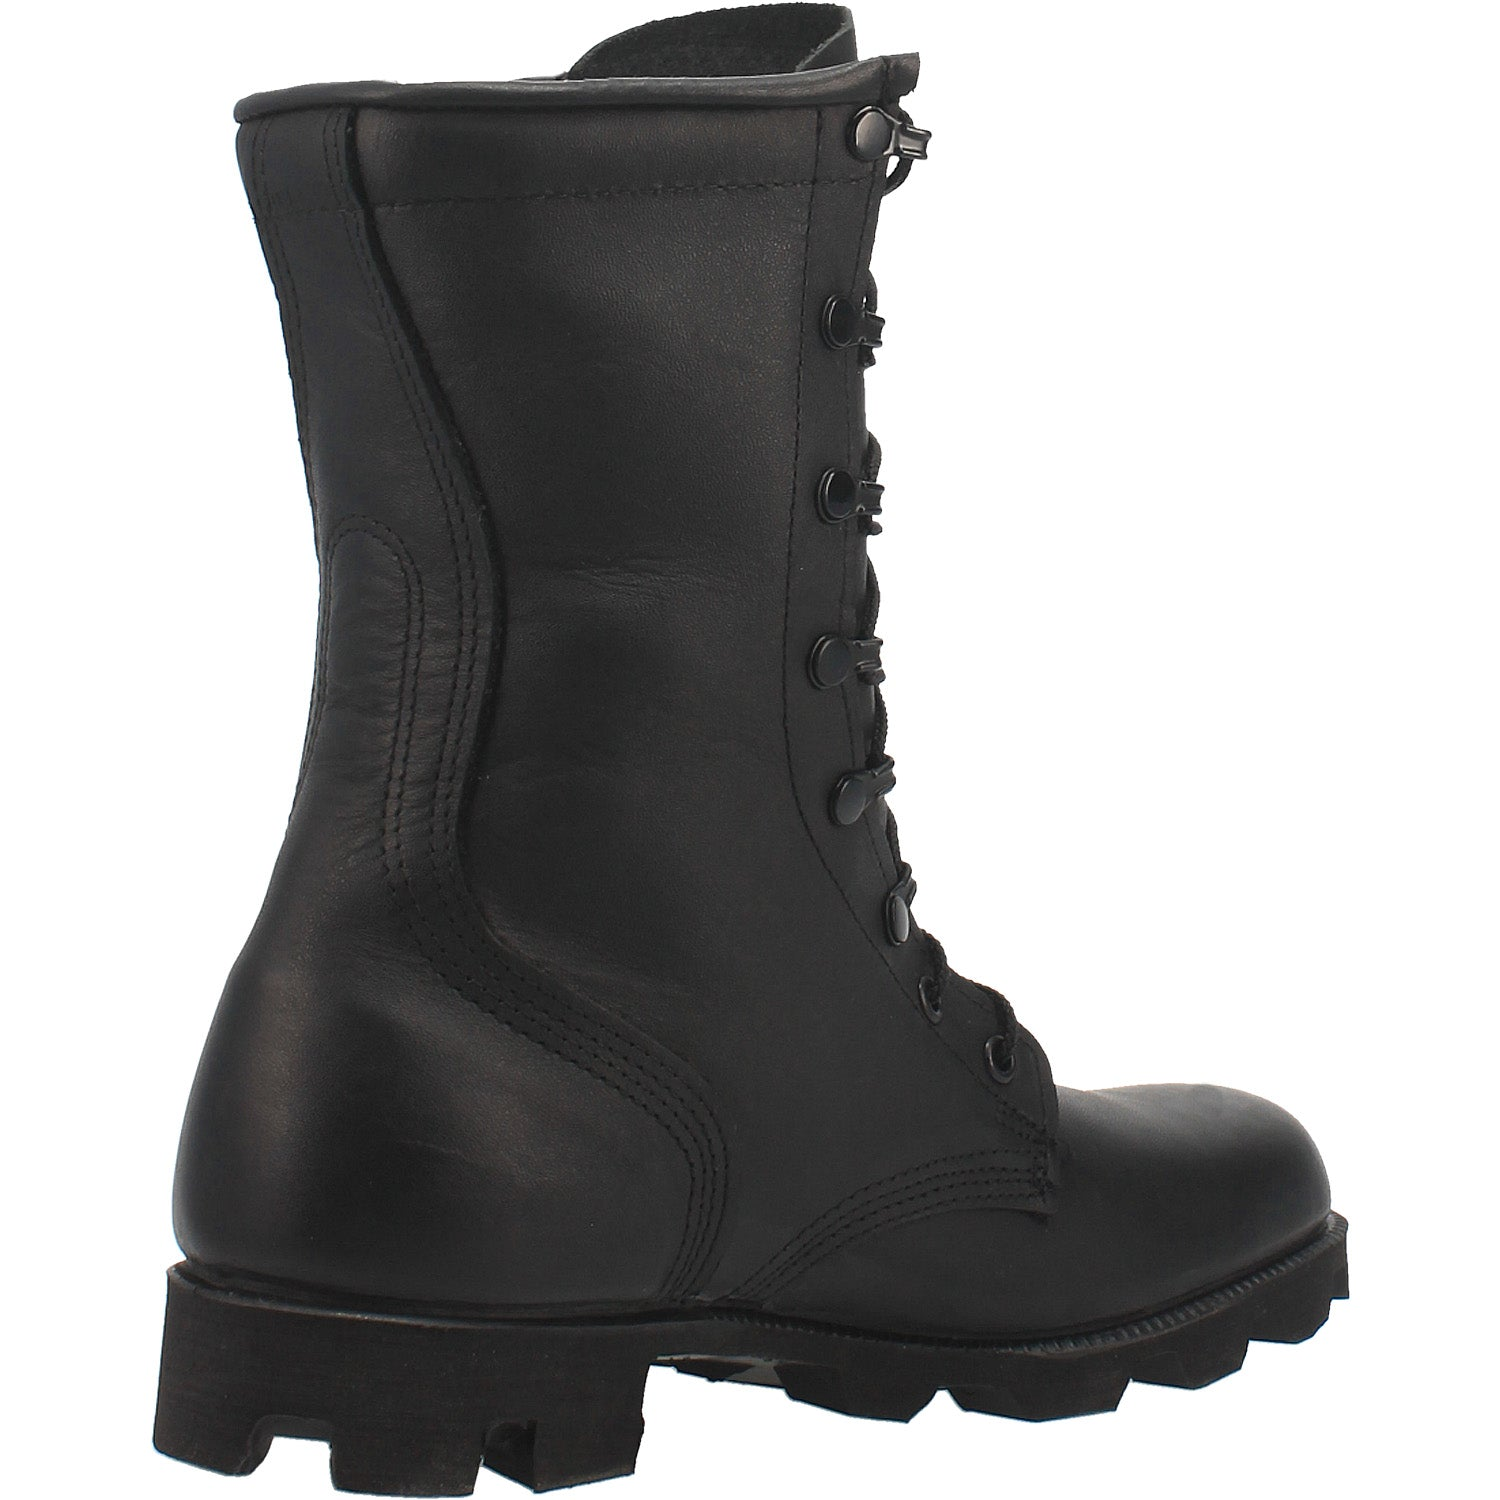 Black All-Leather Combat Boot with Panama Sole 27986670780458